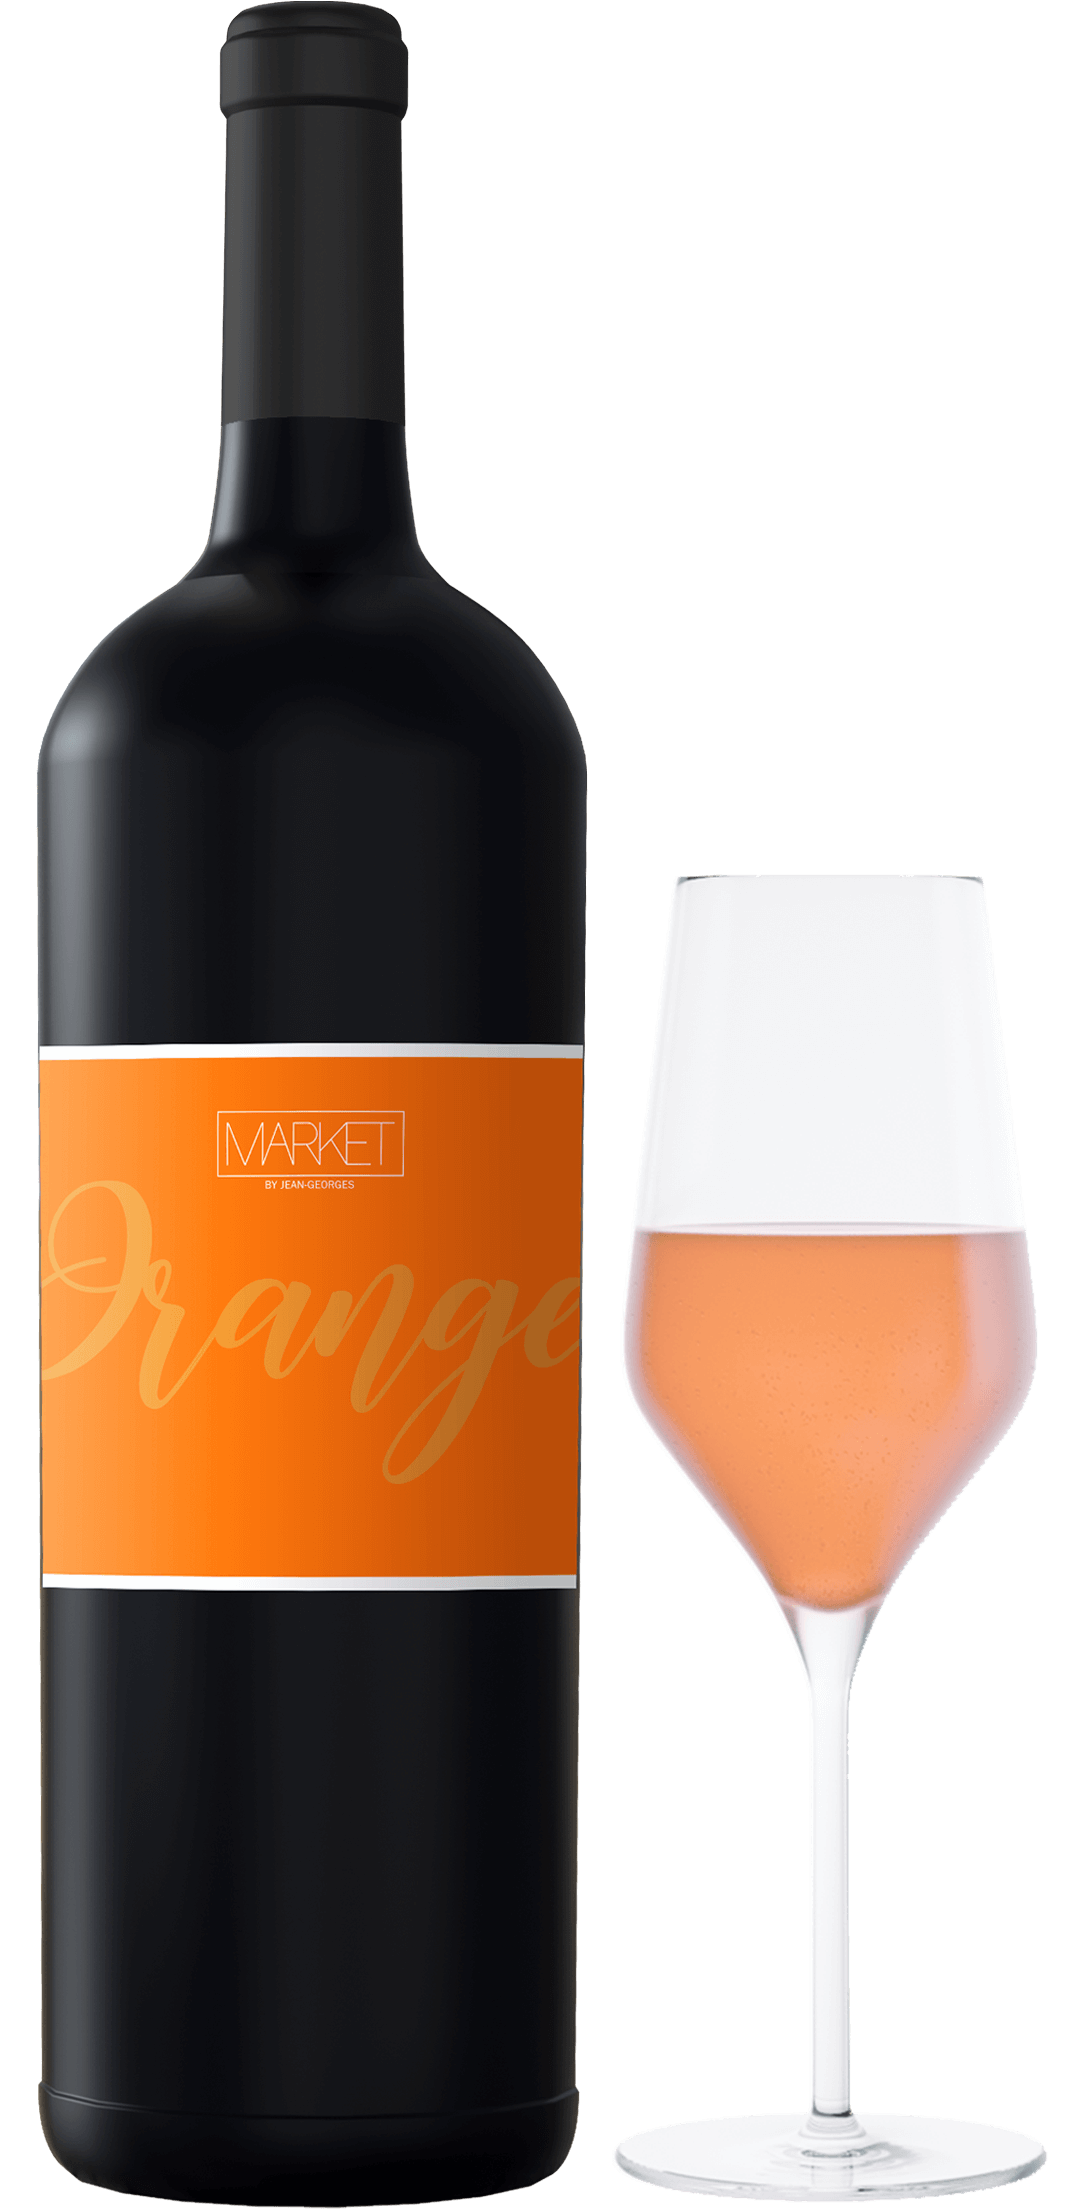 Black bottle with an orange label and a glass with an orange drink